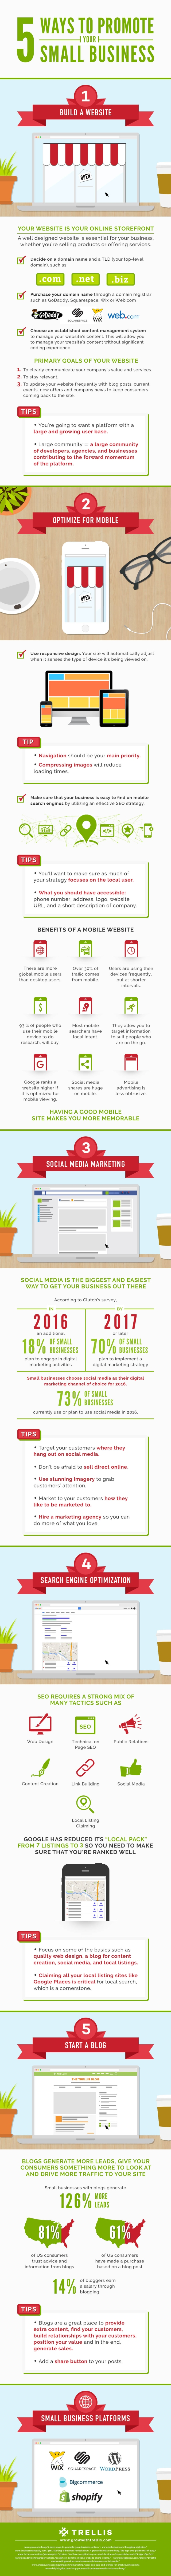 The 5 Most Important Ways to Promote Your Small Business Online